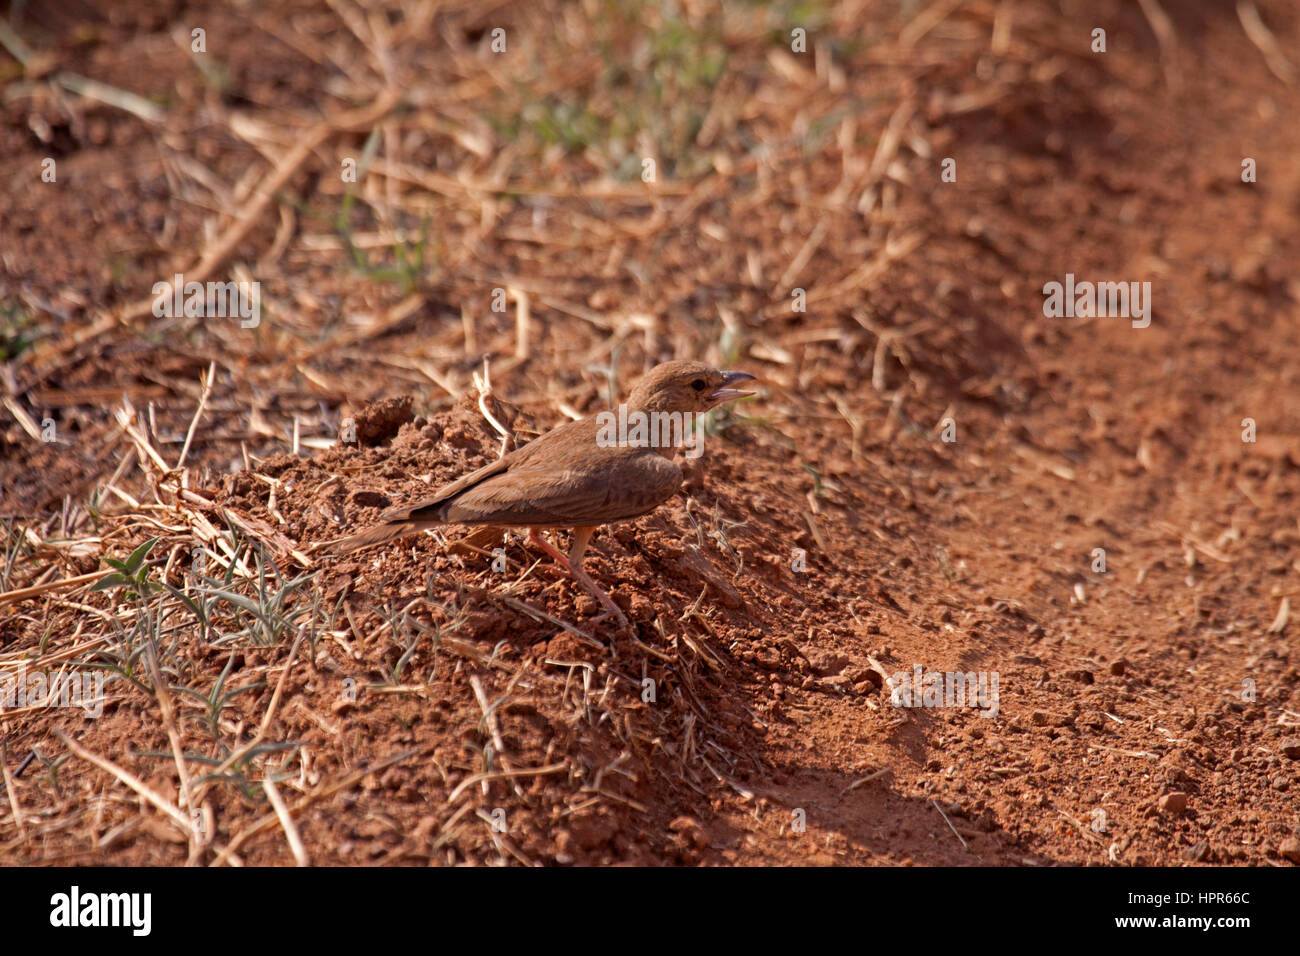 Rufous tailed lark at edge of dirt road in India - Stock Image